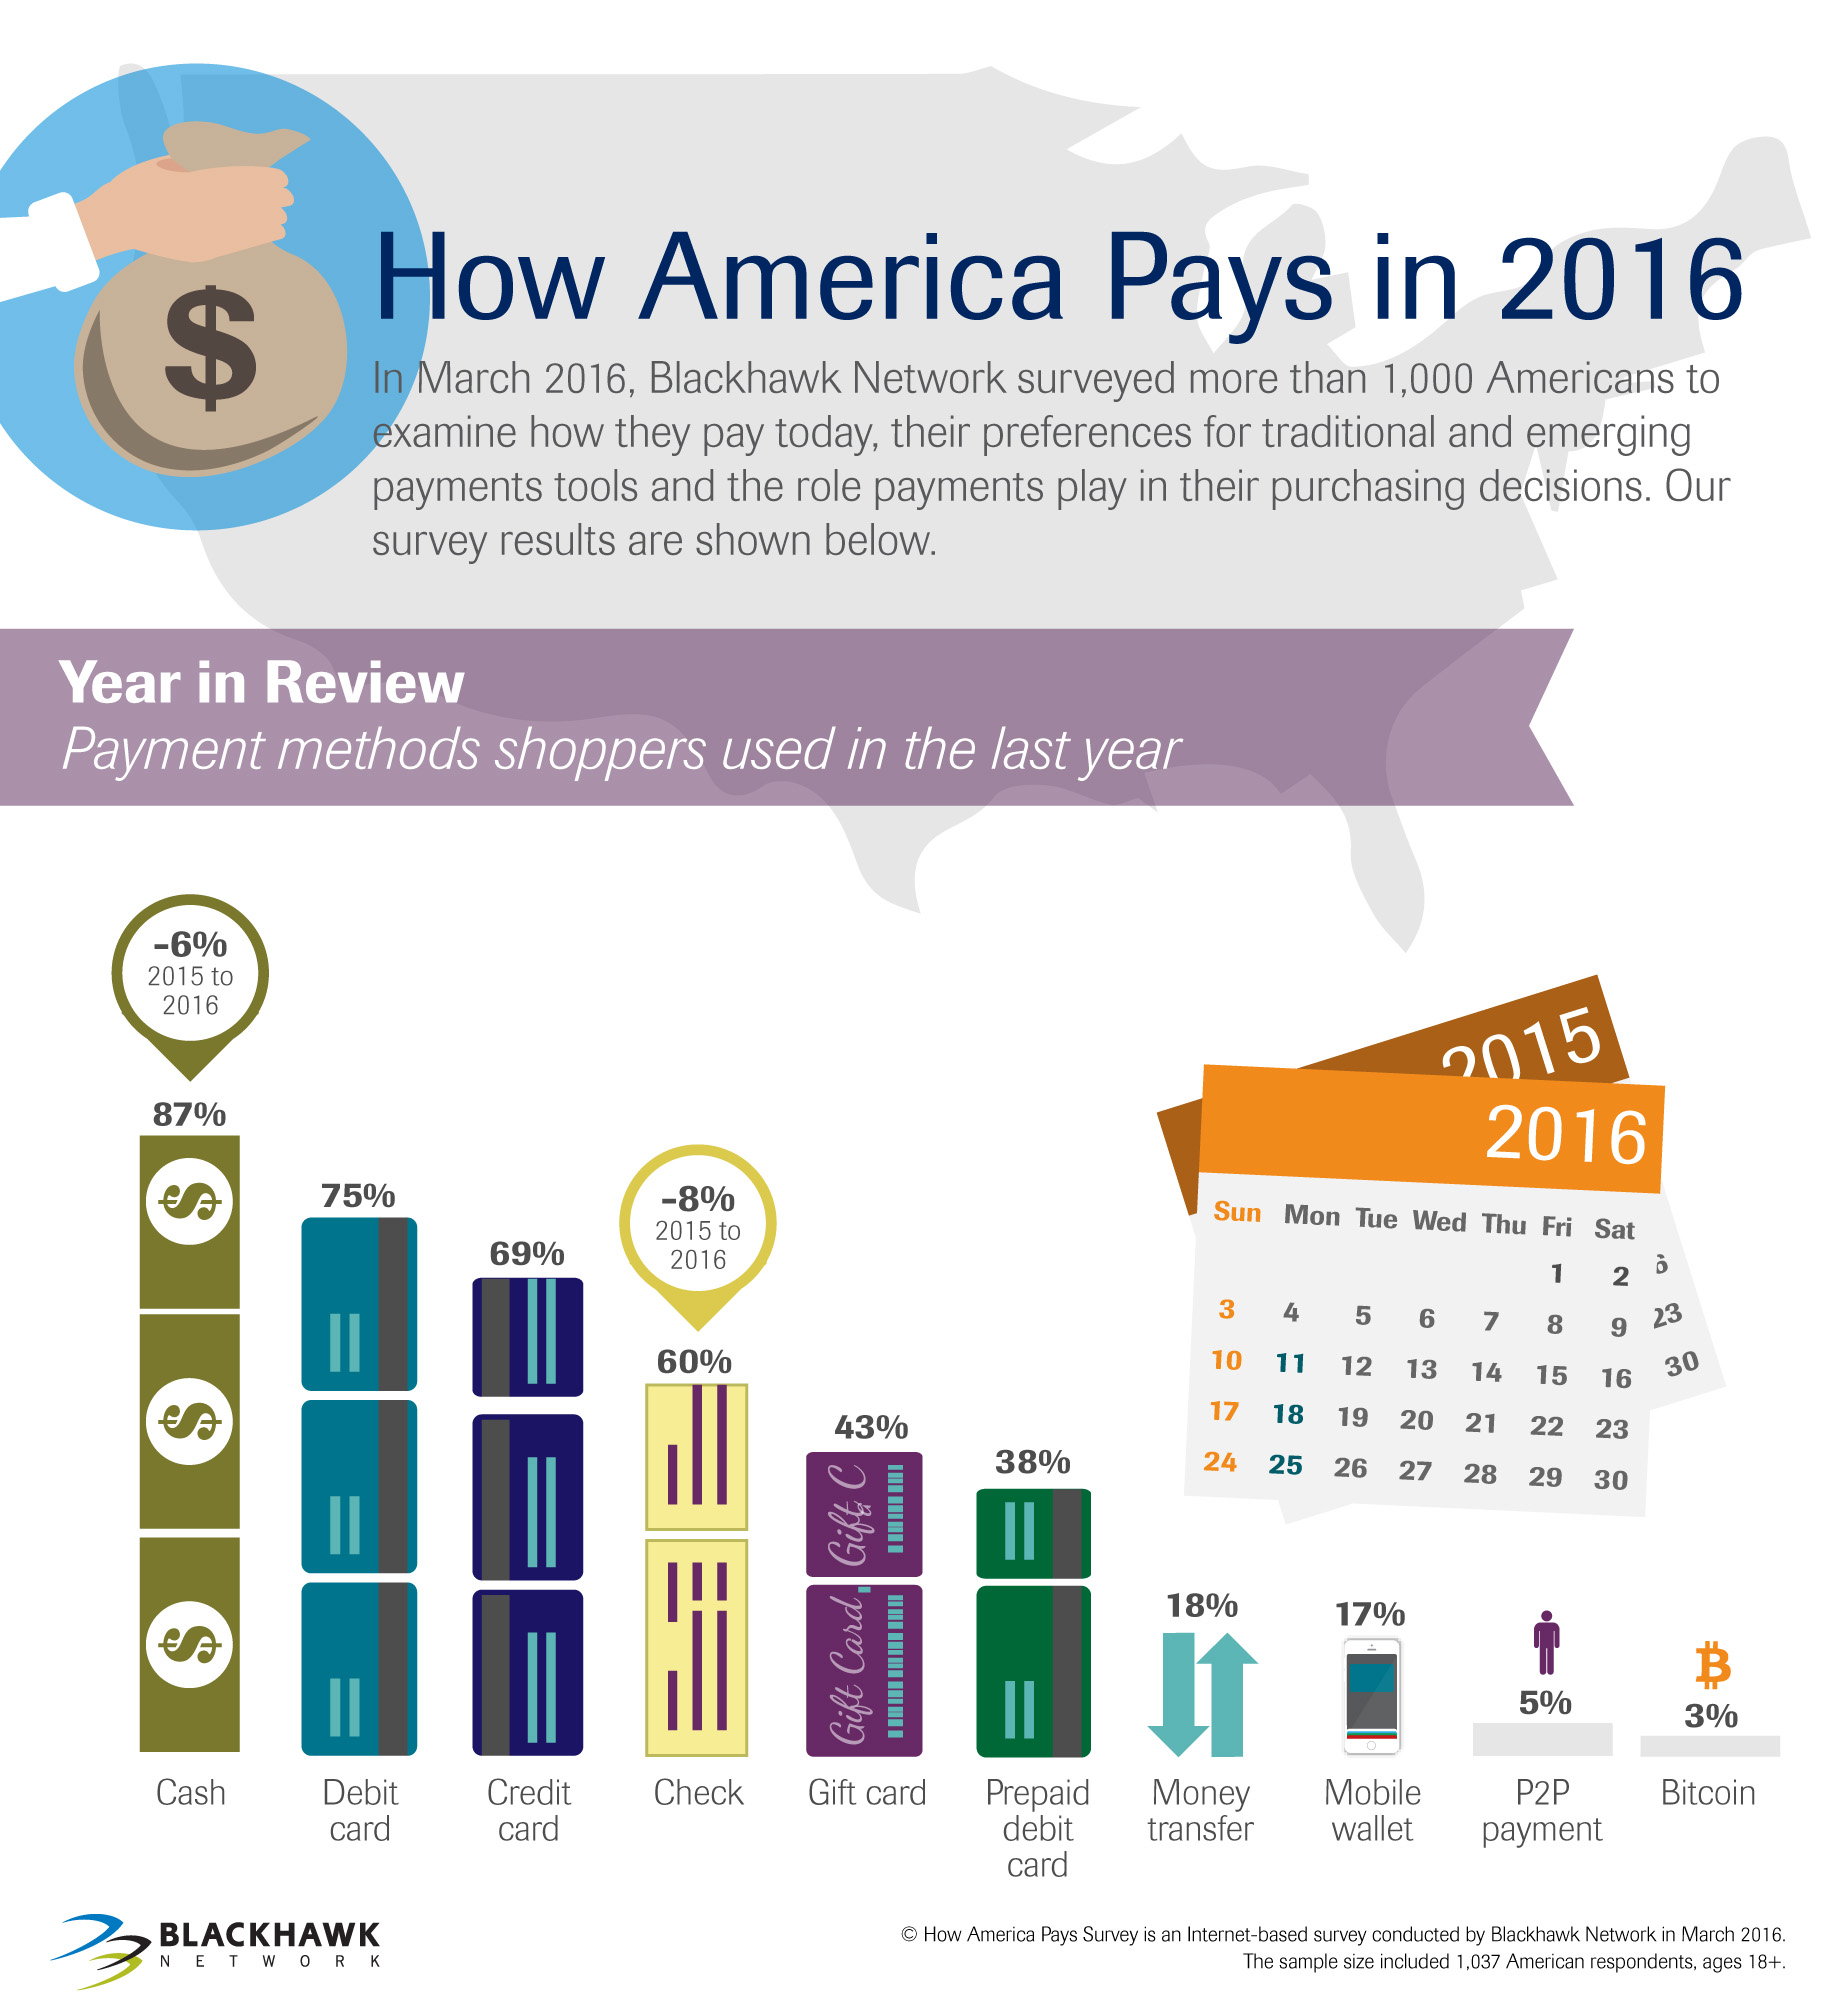 Payment methods shoppers used in the last year